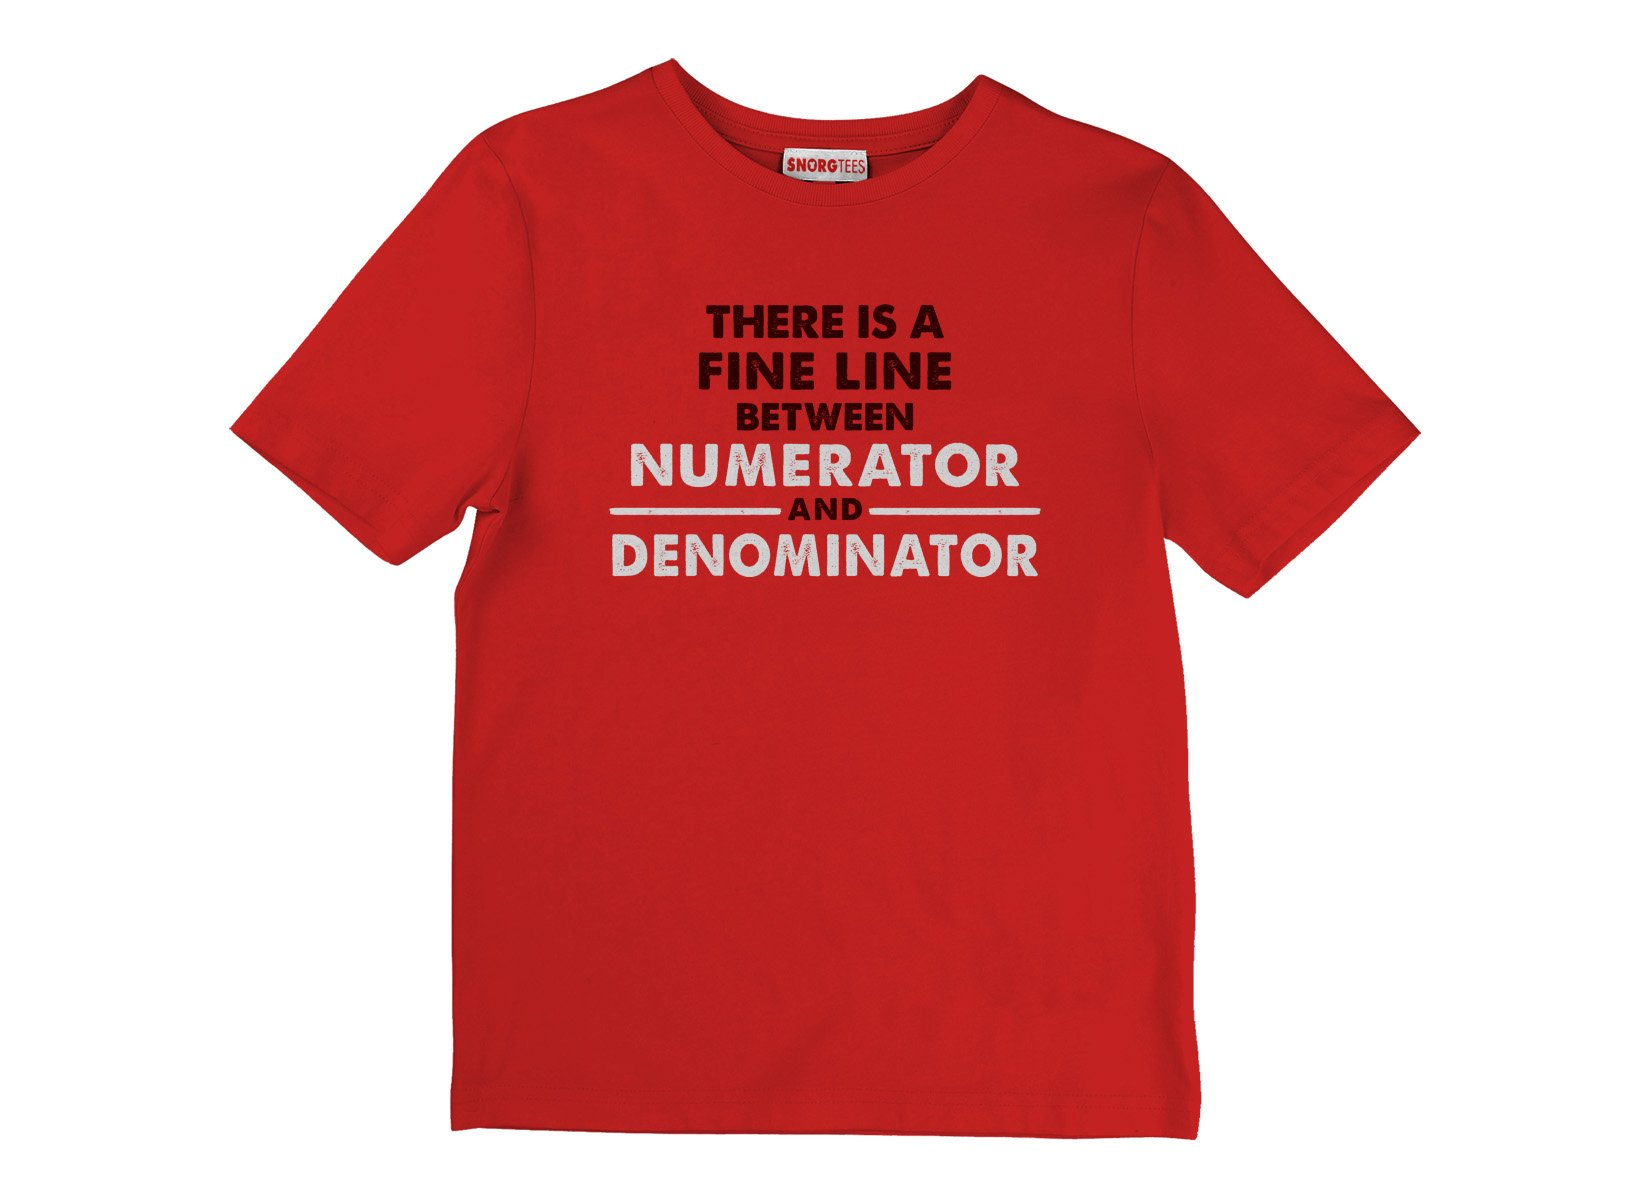 There Is A Fine Line Between Numerator And Denominator on Kids T-Shirt